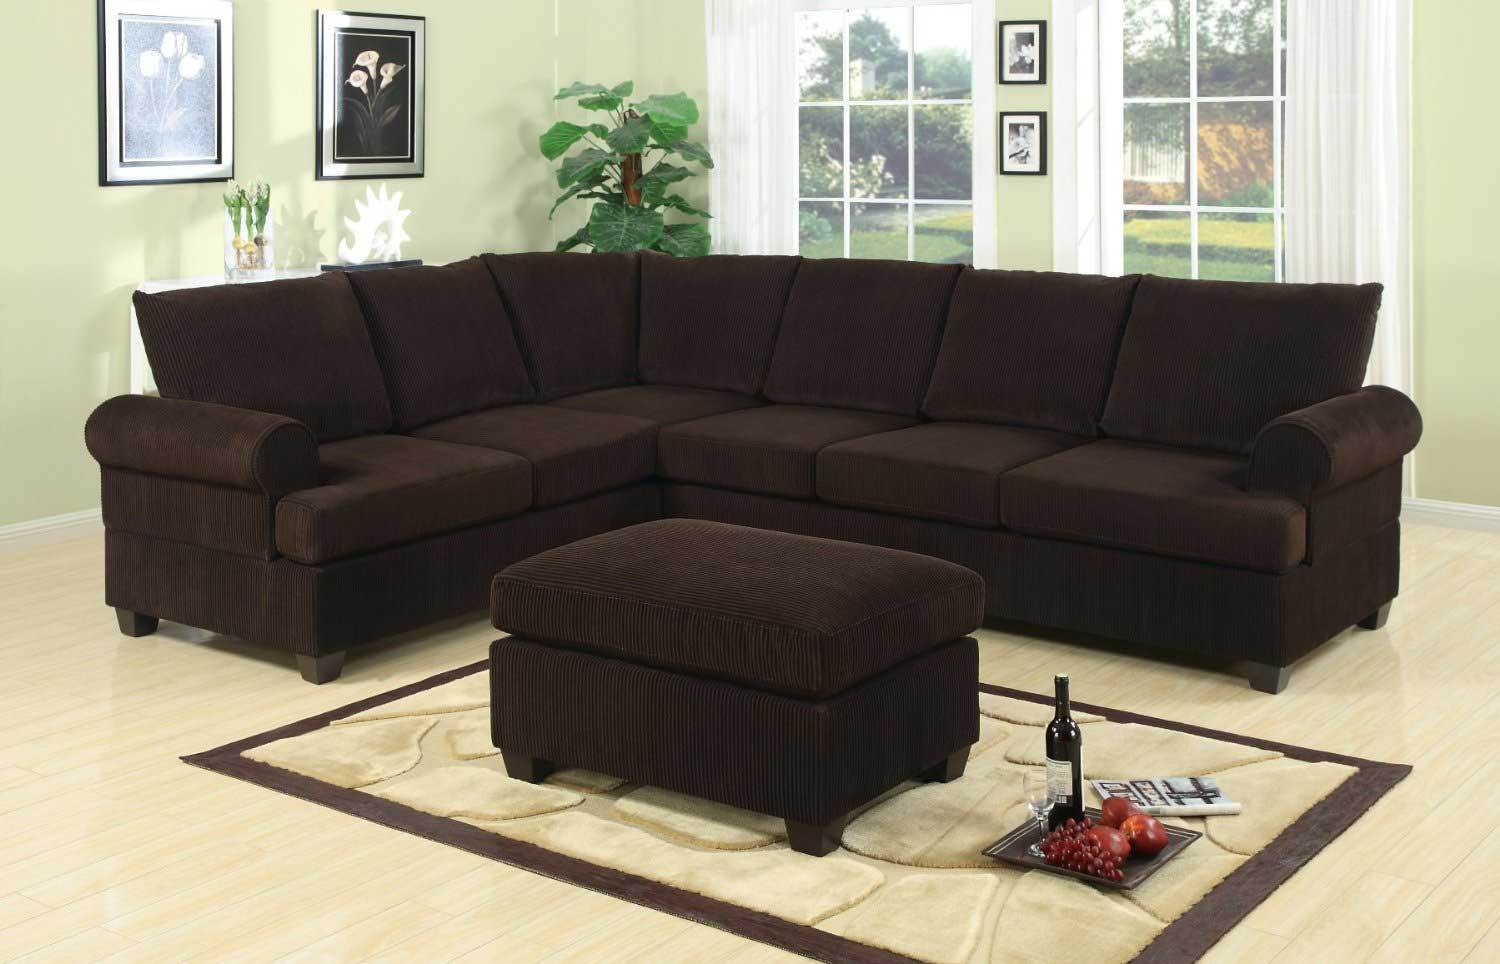 Deals On Couches